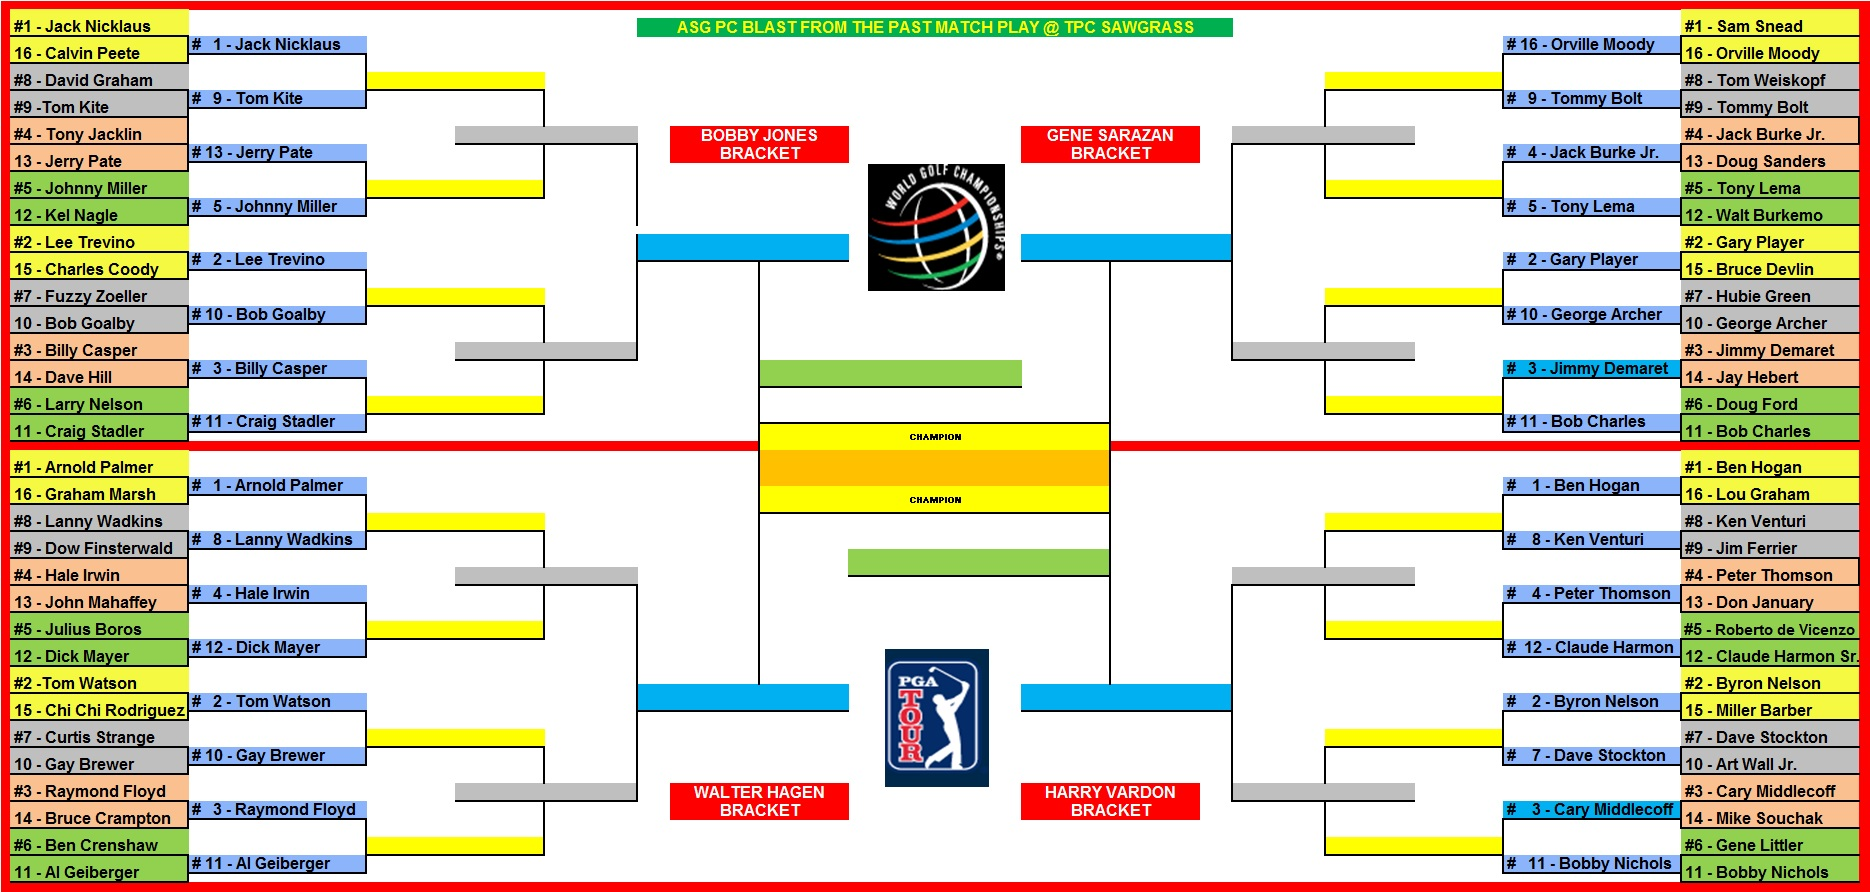 2015 Wgc Cadillac Match Play Championship Printable Bracket